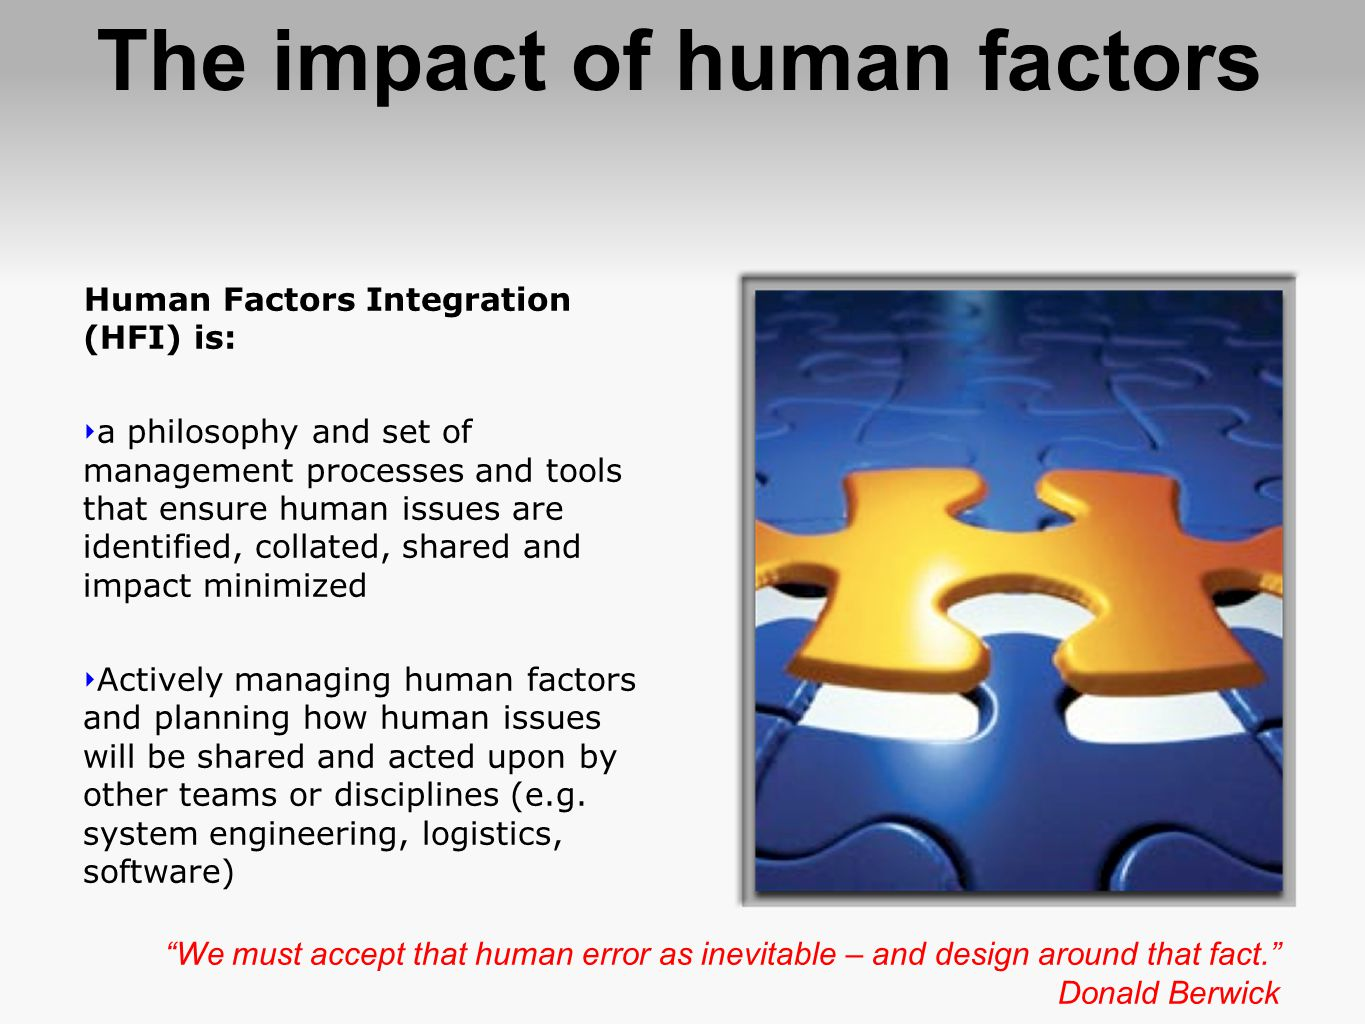 The impact of human factors